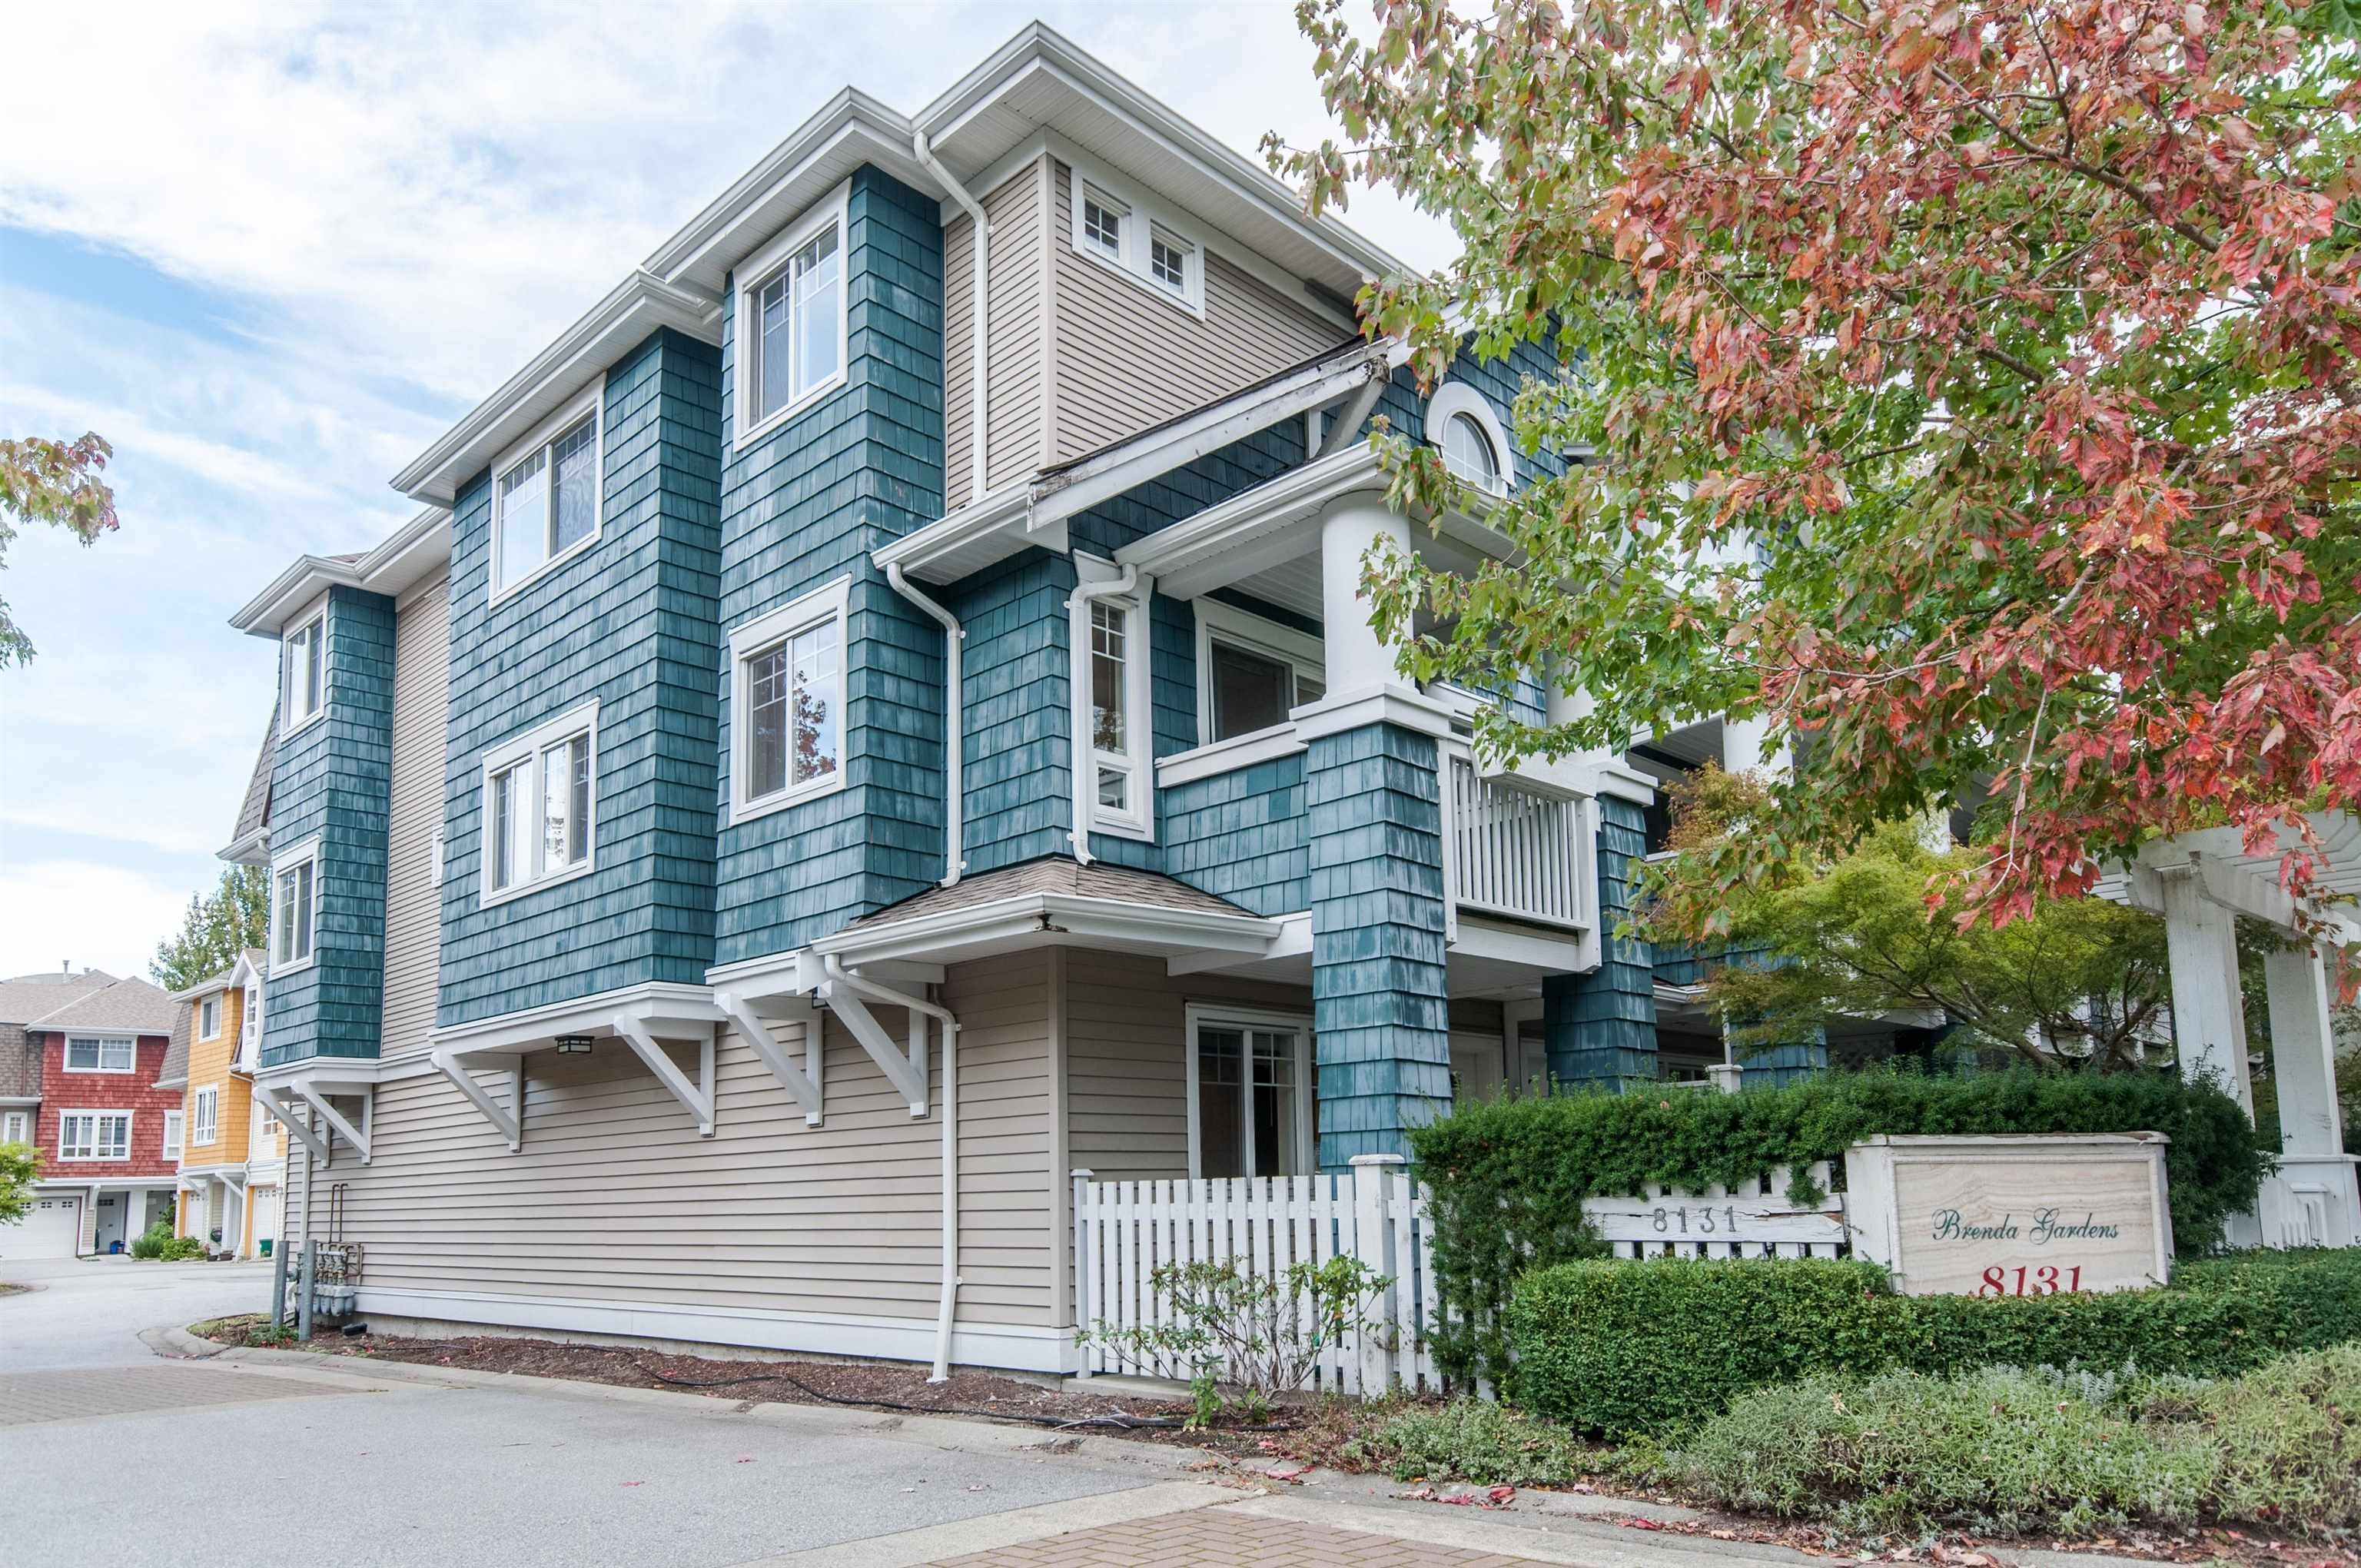 """Main Photo: 1 8131 GENERAL CURRIE Road in Richmond: Brighouse South Townhouse for sale in """"BRENDA GARDENS"""" : MLS®# R2625260"""